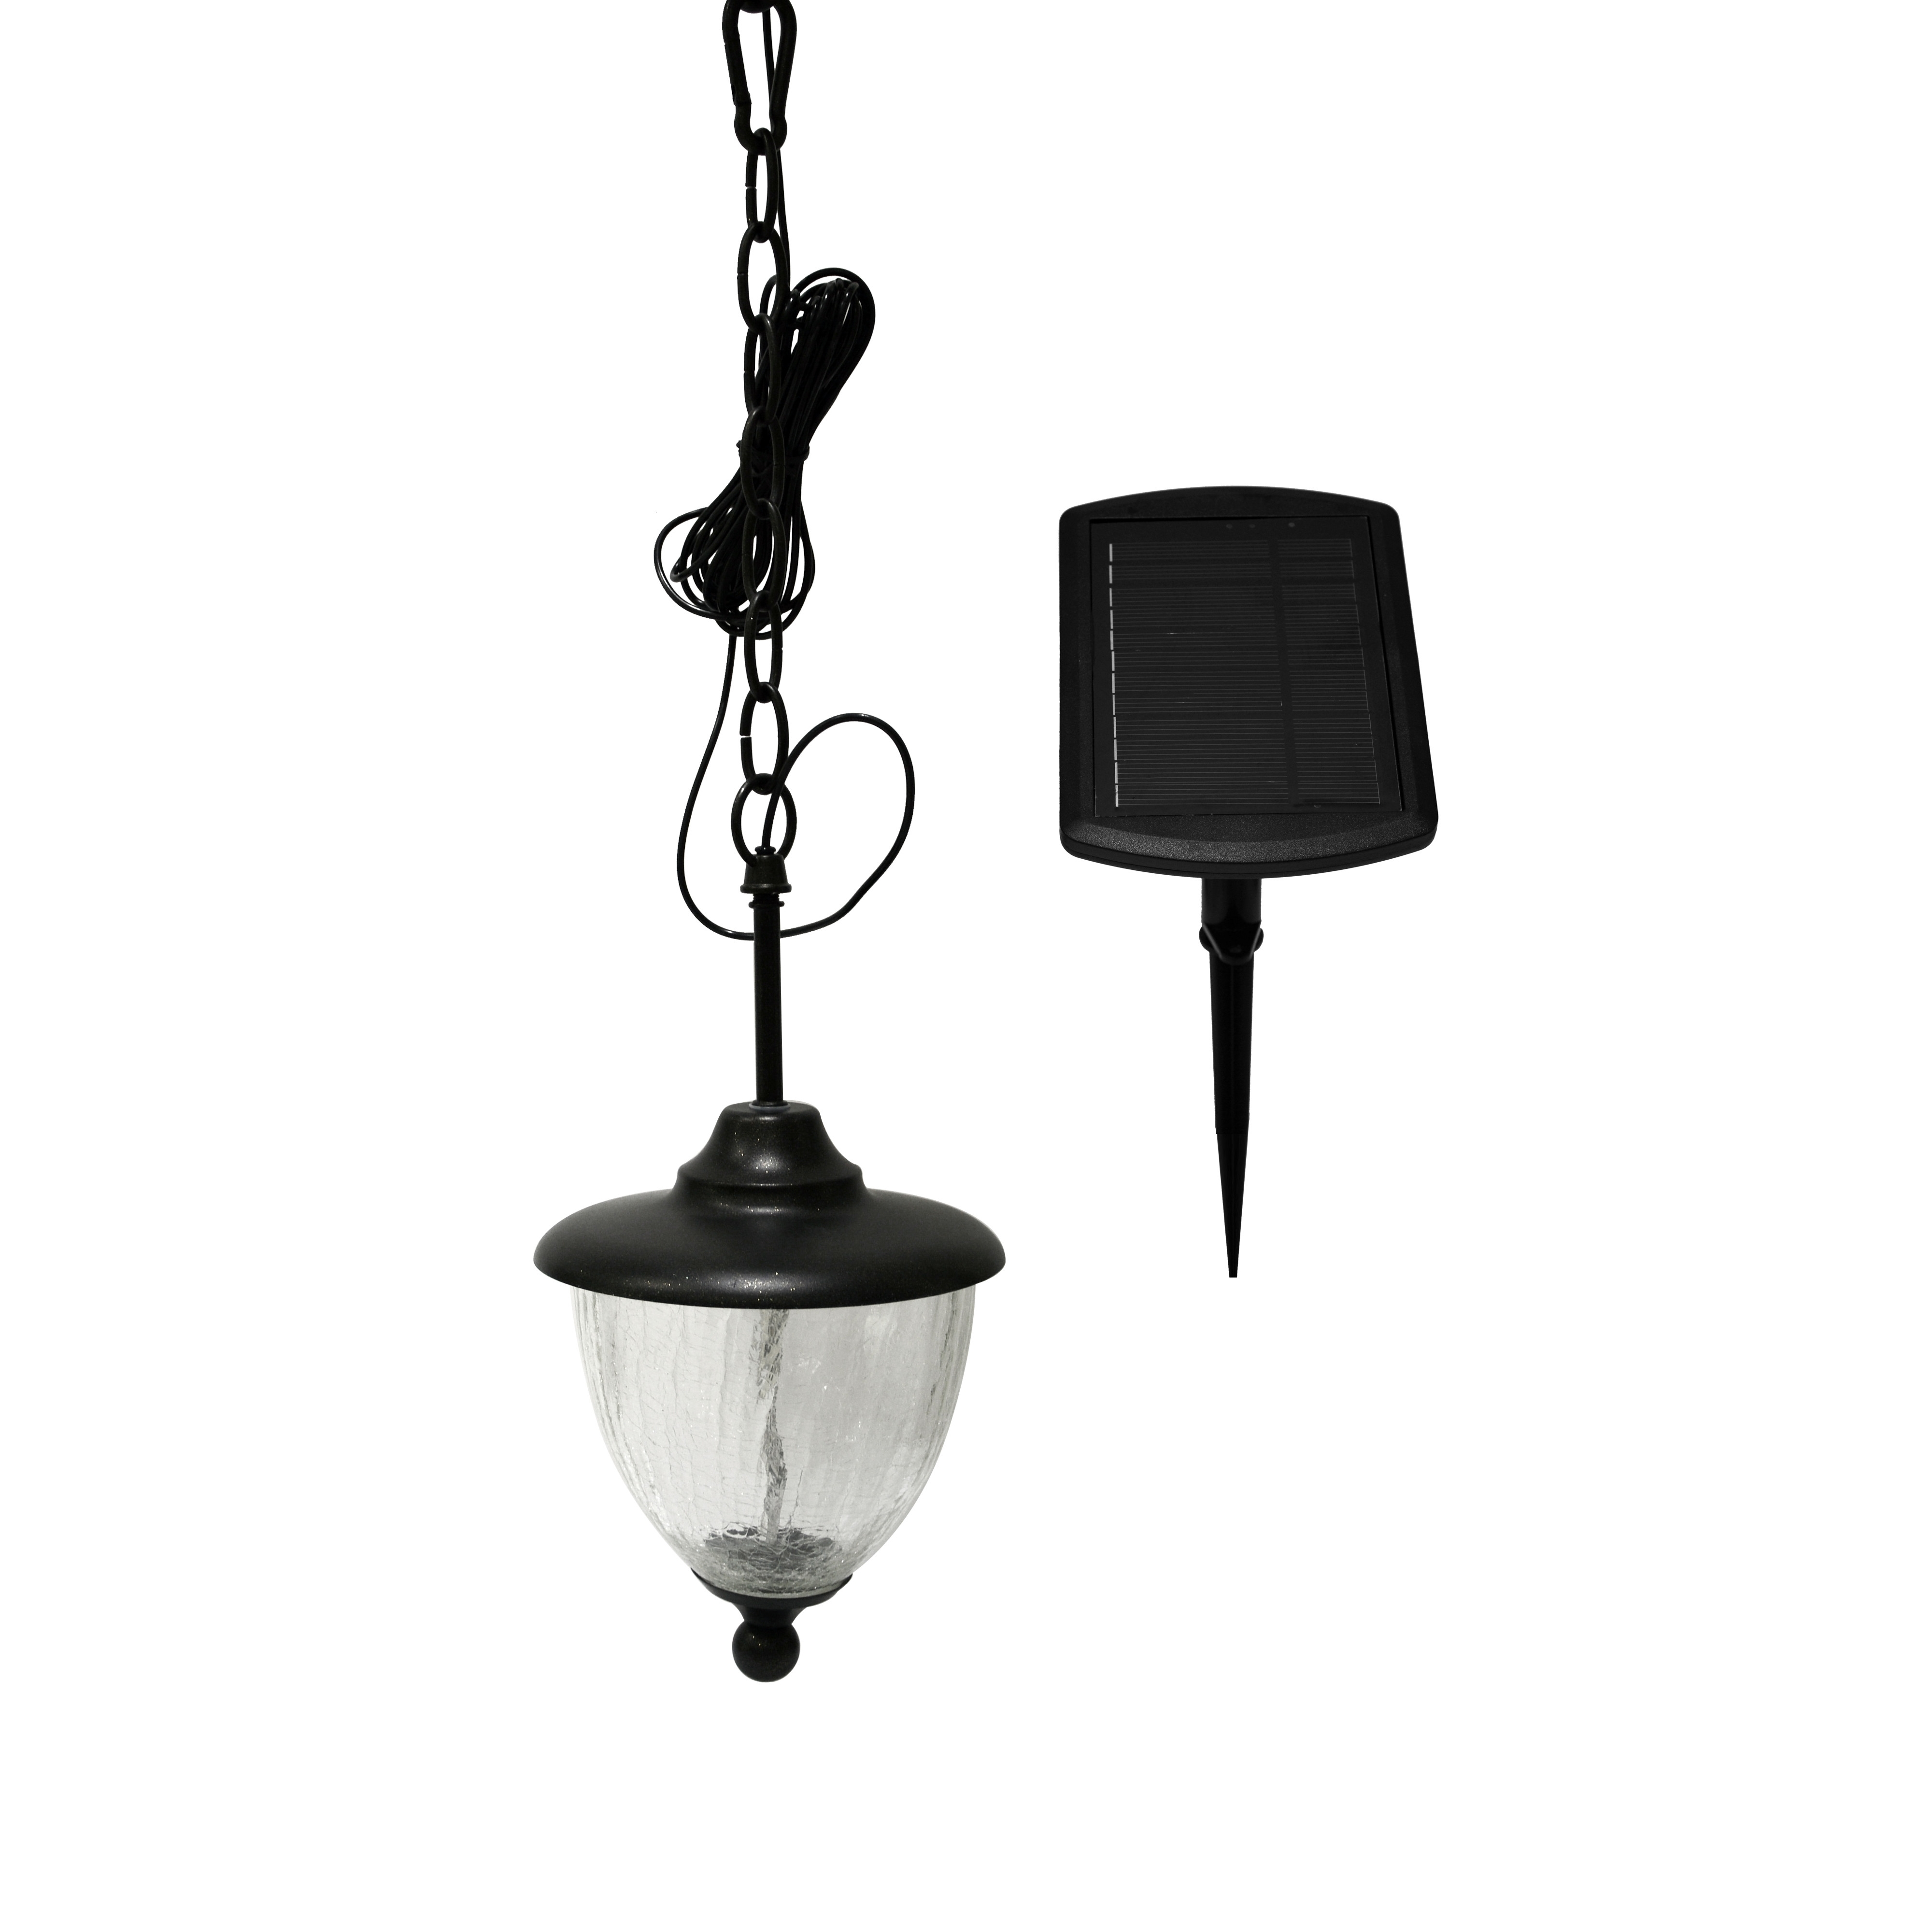 Photos Hgtv Transitional Dining Room With Hanging Light Fixture Throughout Contemporary Outdoor Solar Lights At Wayfair (#14 of 15)